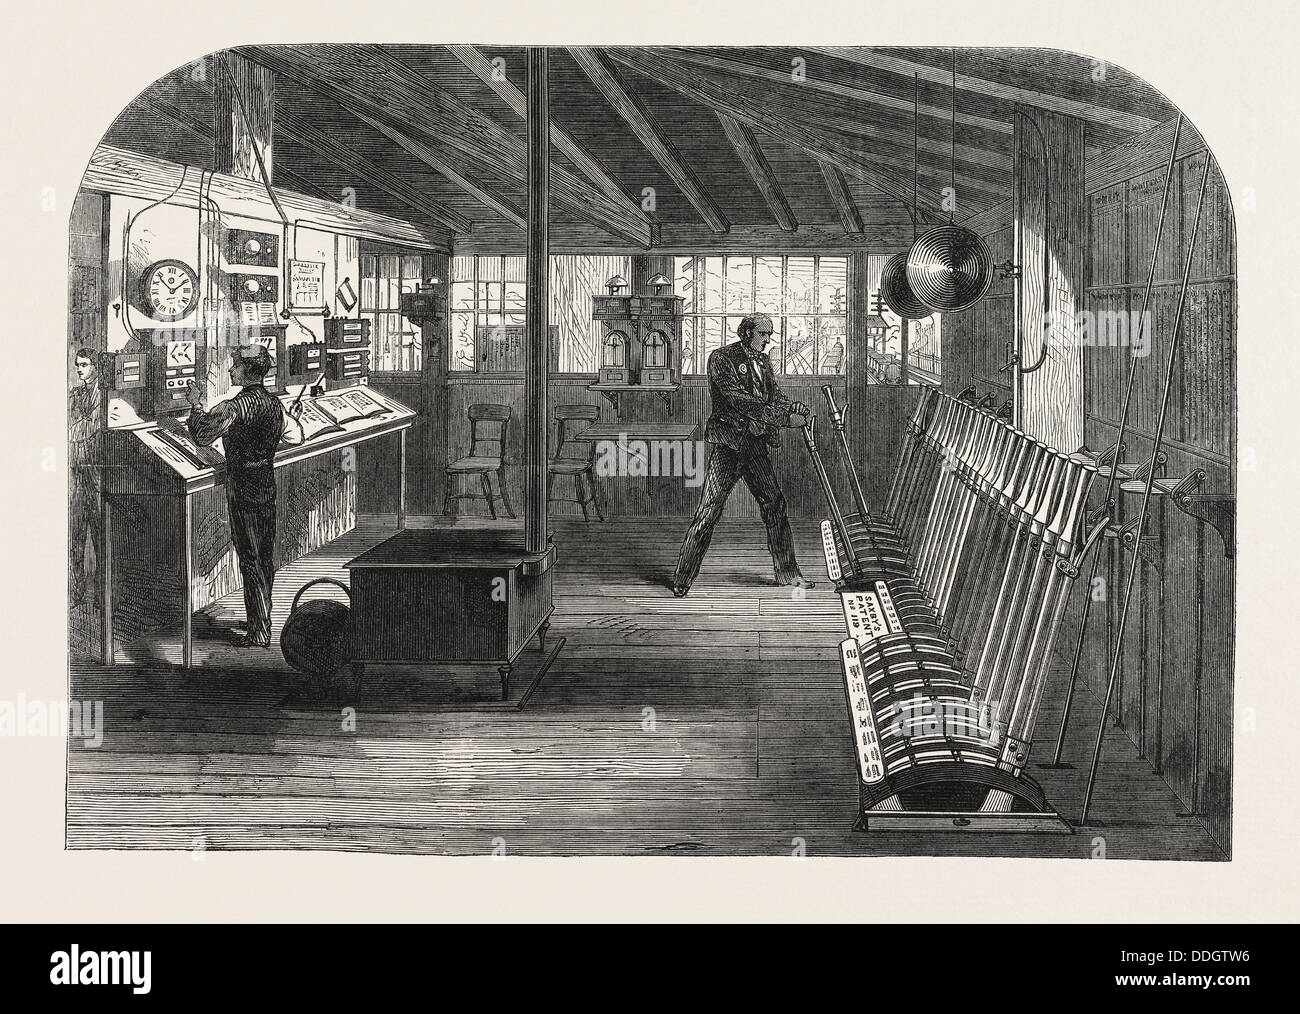 INTERIOR OF THE A.B. SIGNAL-BOX OF THE SOUTH EASTERN RAILWAY AT THE LONDON BRIDGE STATION, LONDON, UK, 1866 - Stock Image